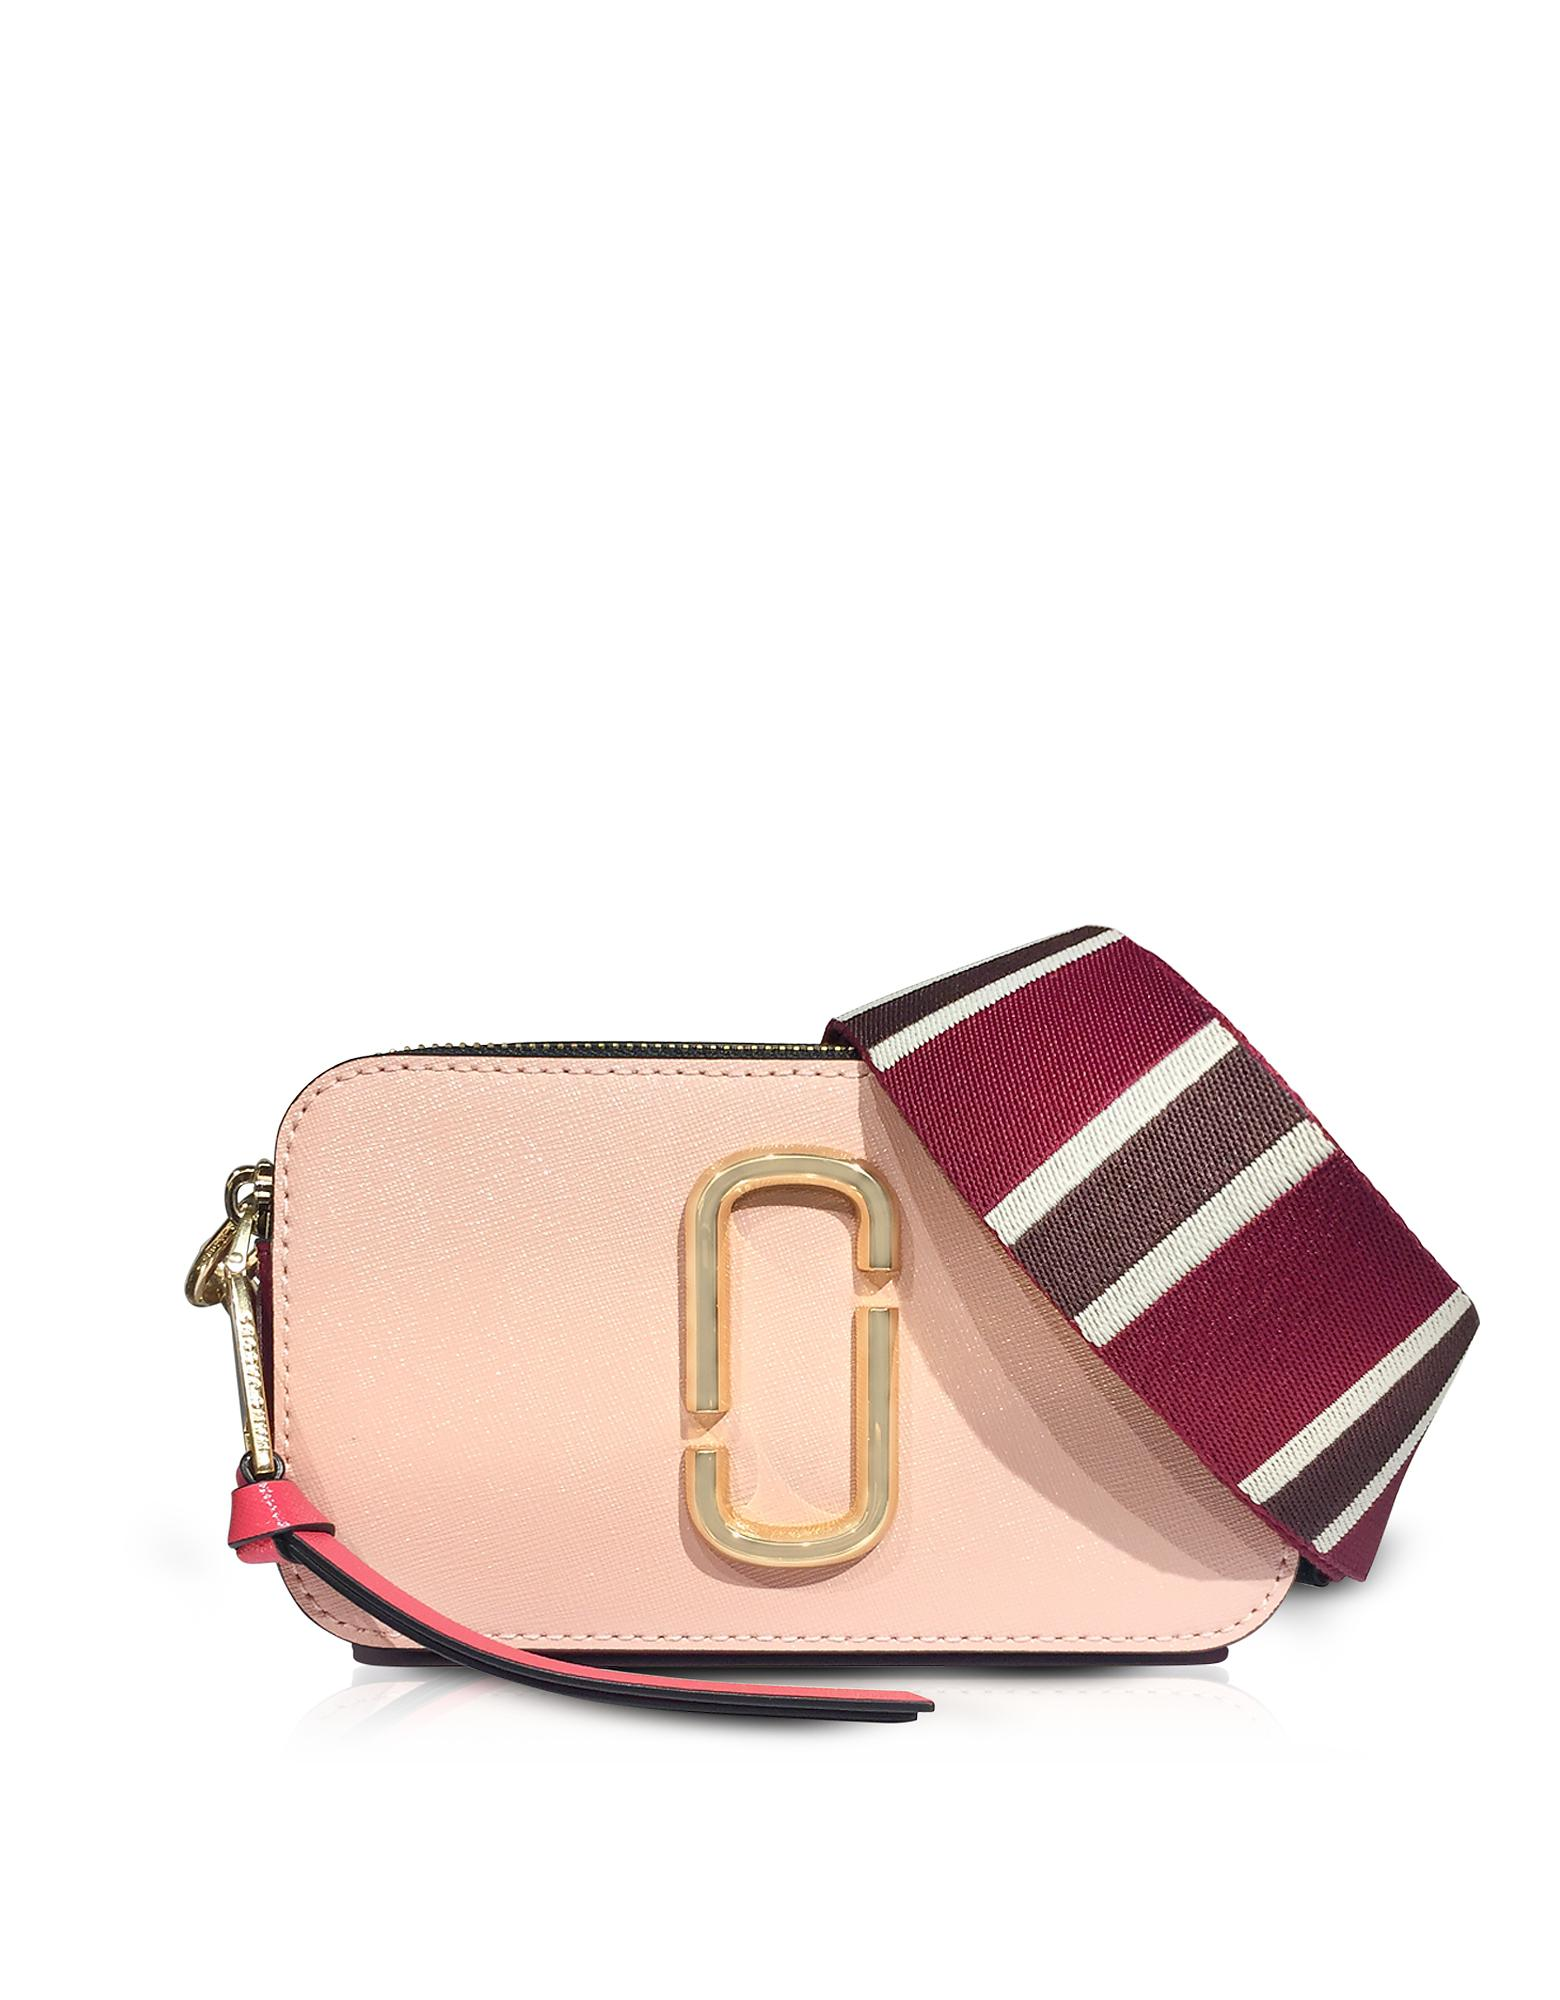 c1c1afd20a70 Lyst - Marc Jacobs Rose Multi Color Block Snapshot Camera Bag in Pink